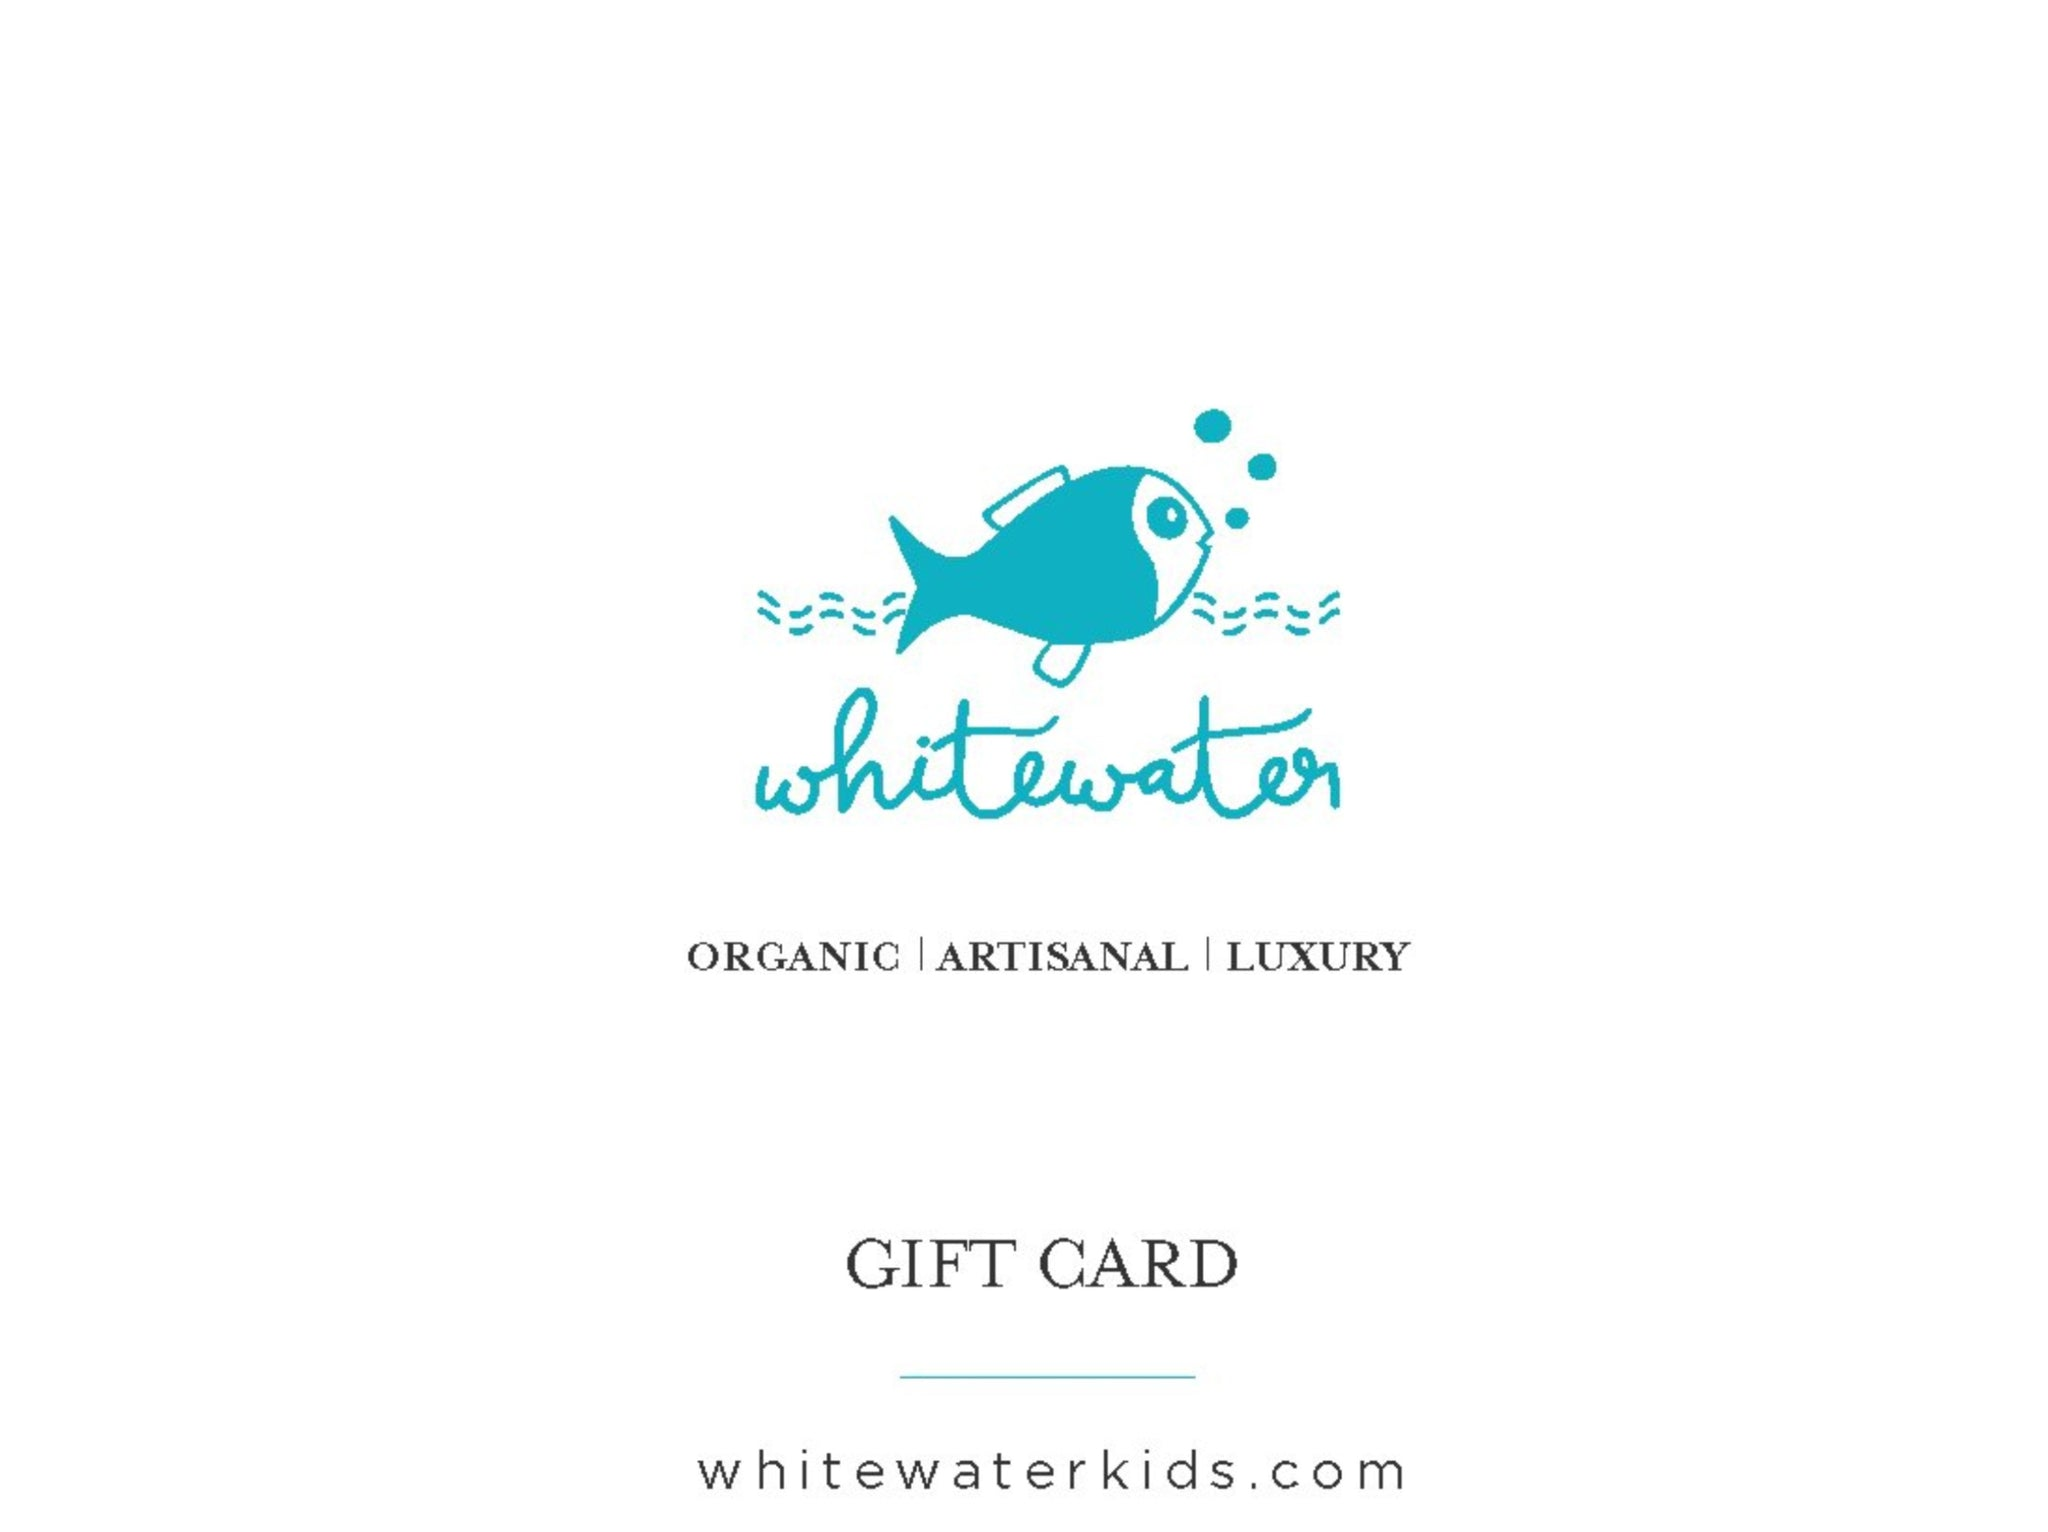 E-Gift Card - Whitewater